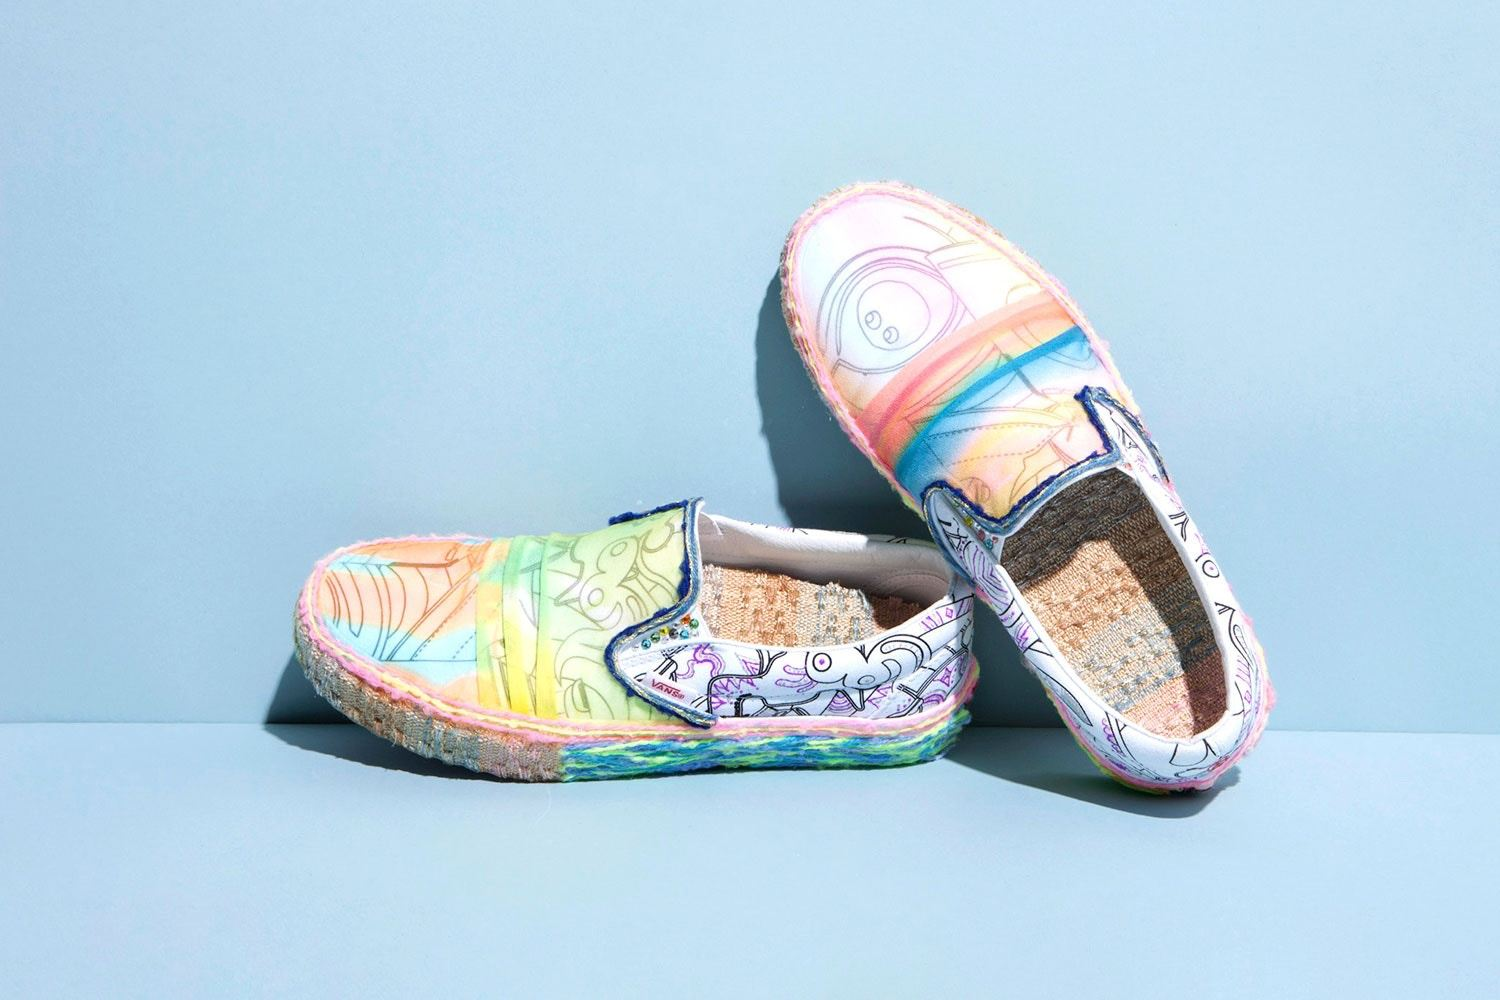 marc jacobs and vans slip on capsule collection - the chicflaneuse.com 12